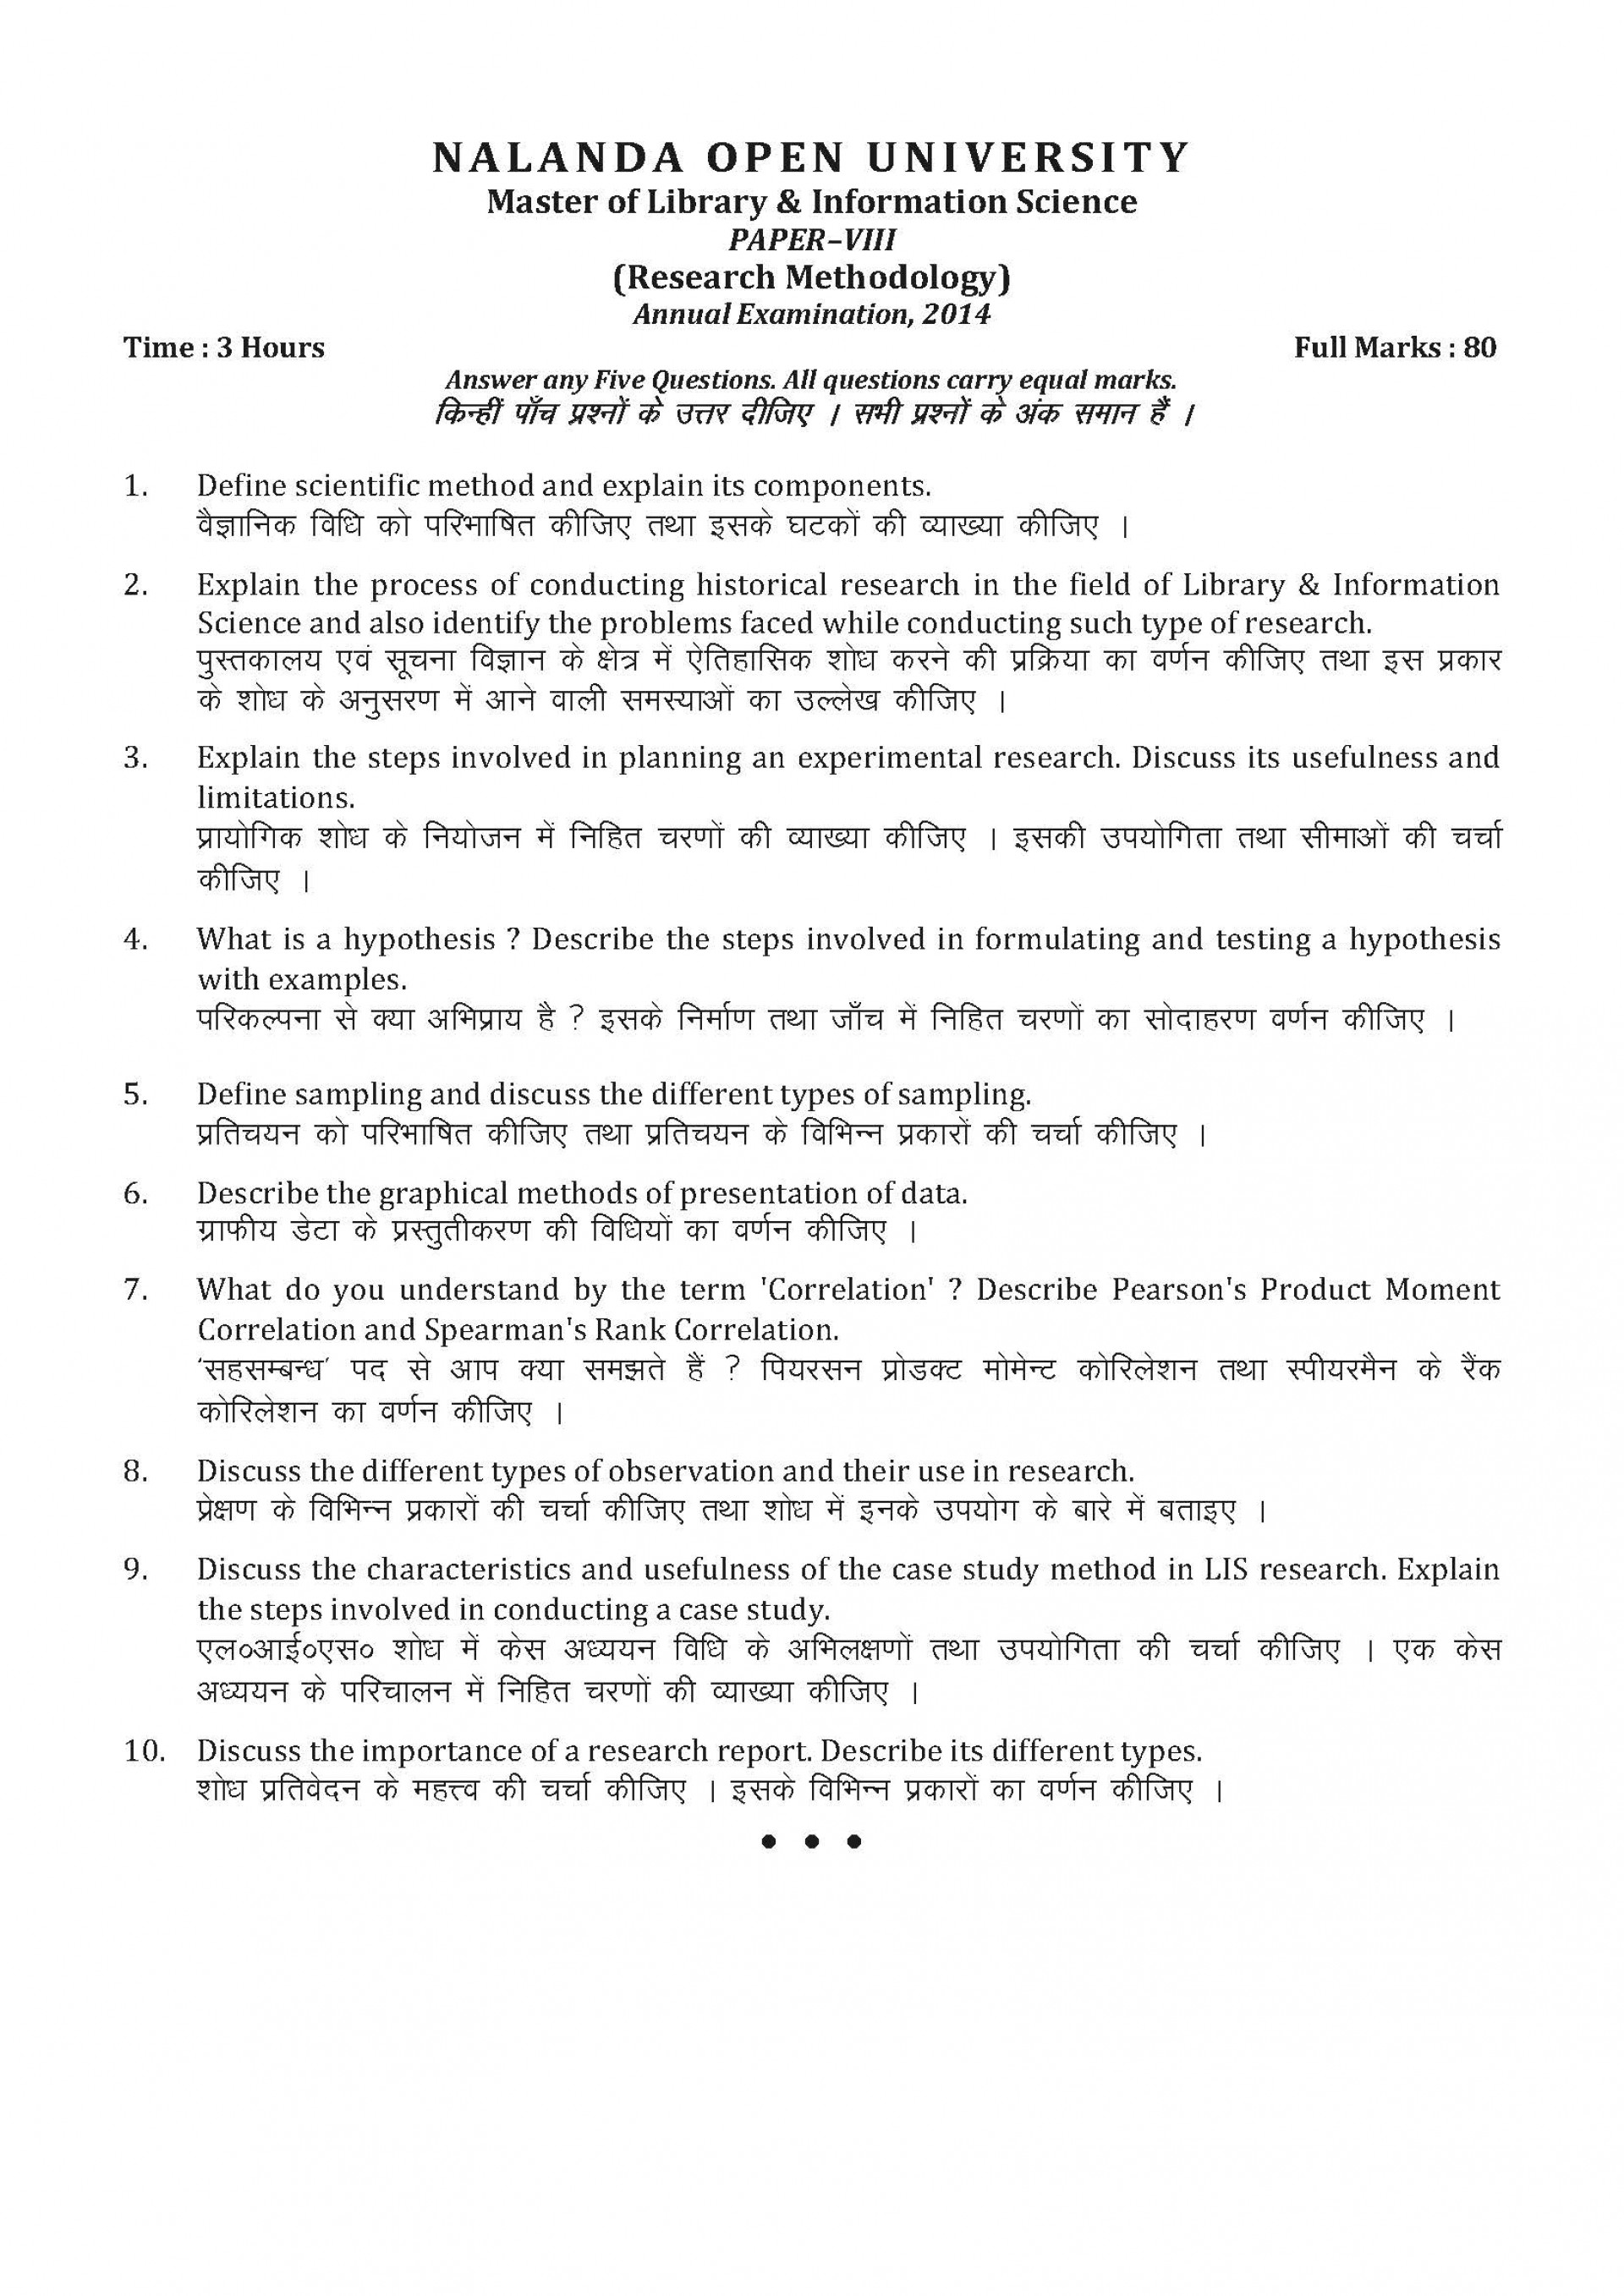 004 Master Of Library Information Science Research Methodology Paper Viii Papers Astounding Pdf Format In Hindi Example Mla 1920